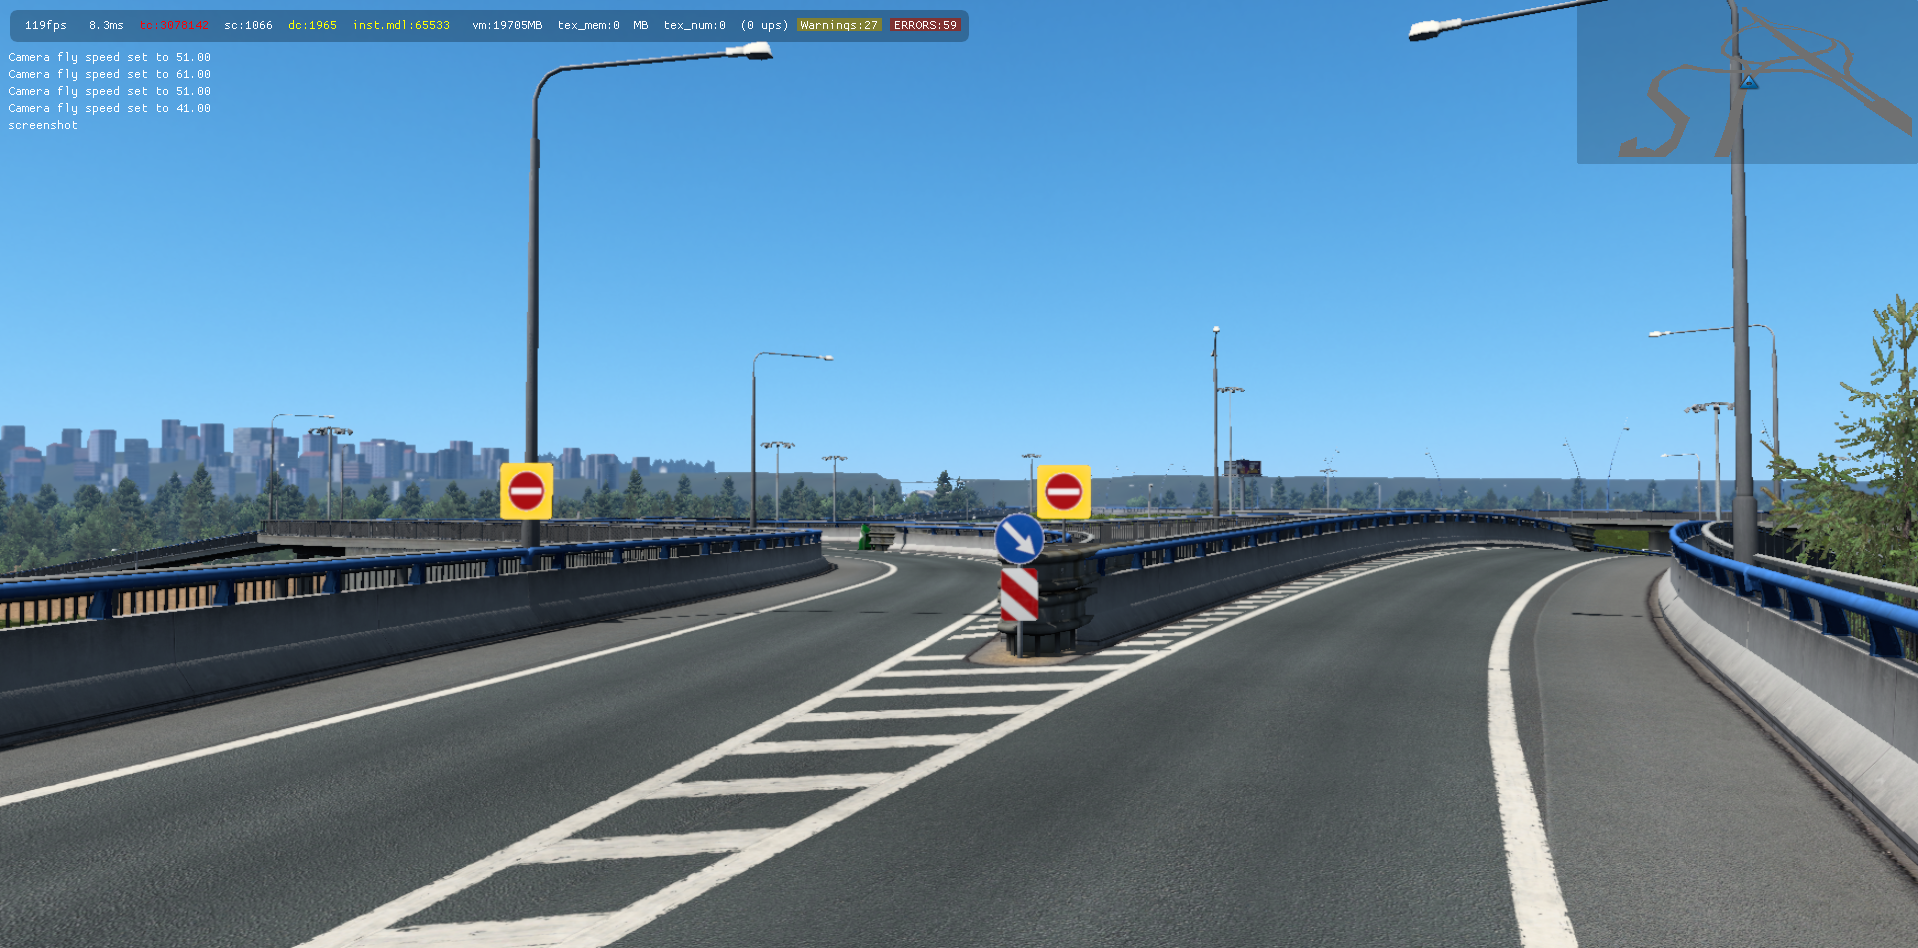 ets2_20210729_130323_00.png